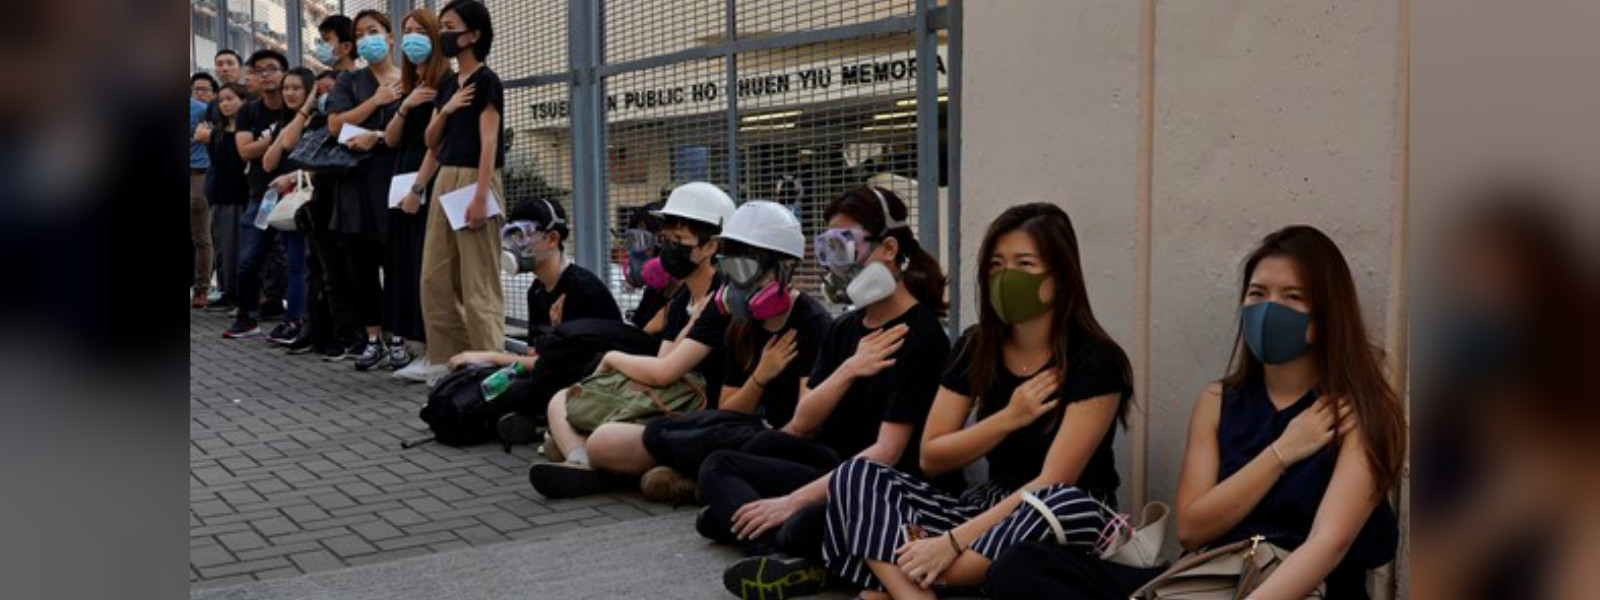 Students rally after Hong Kong police shoots teenage protester in chest